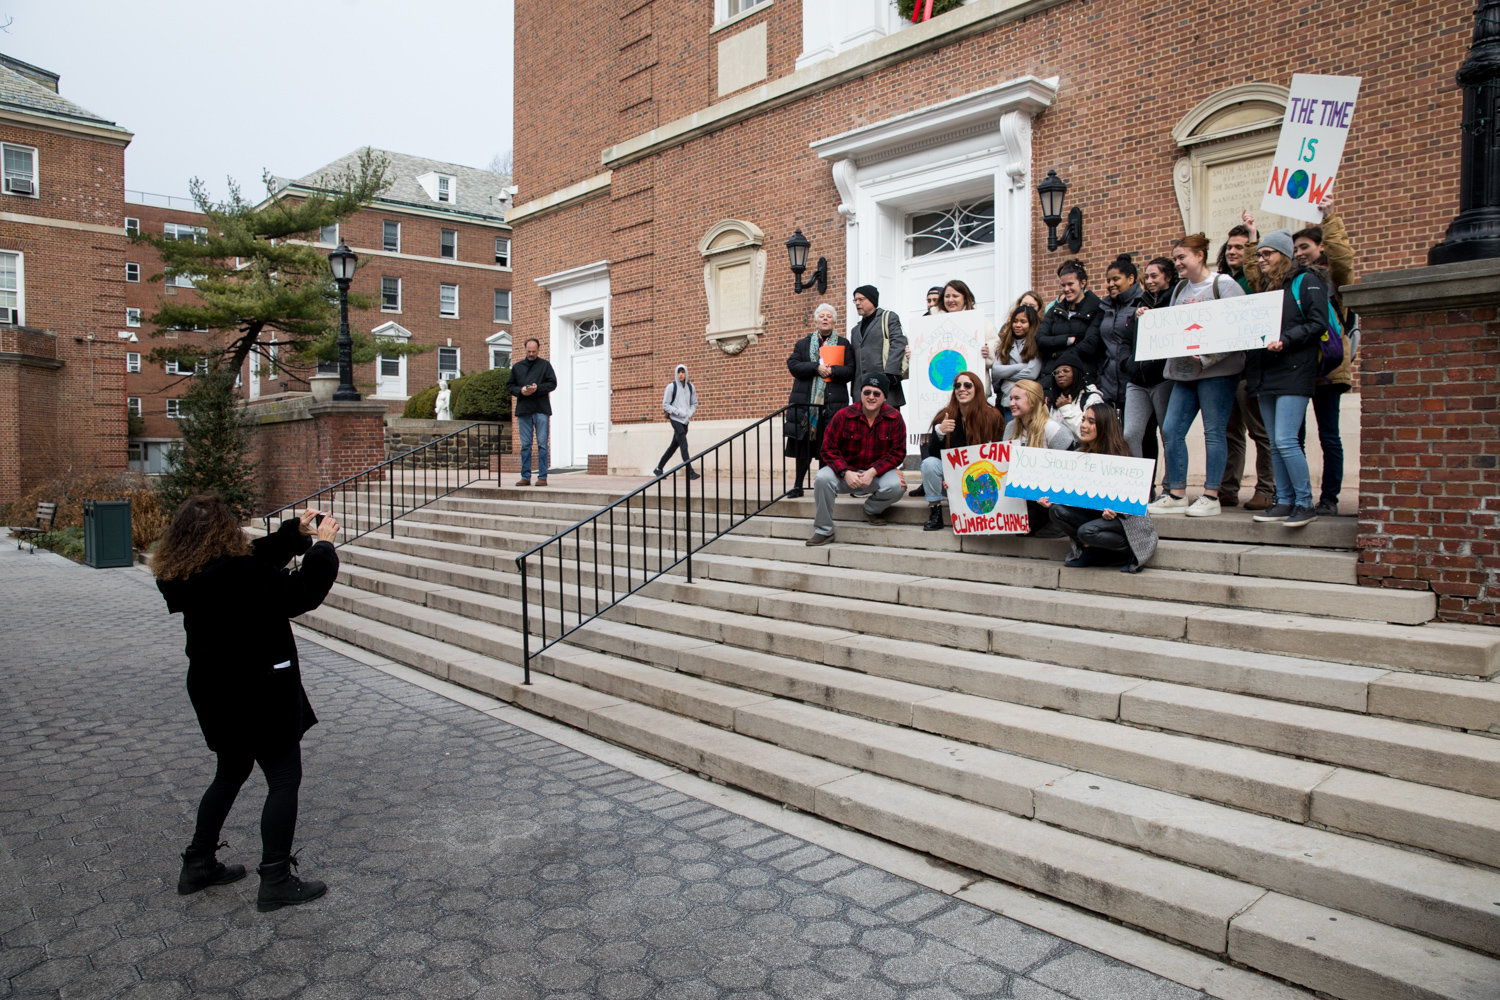 Pamela Chasek, a political science professor at Manhattan College, takes a picture of students participating in an awareness campaign calling attention to the global climate crisis inspired by Swedish climate activist Greta Thunberg's Fridays for Future movement.